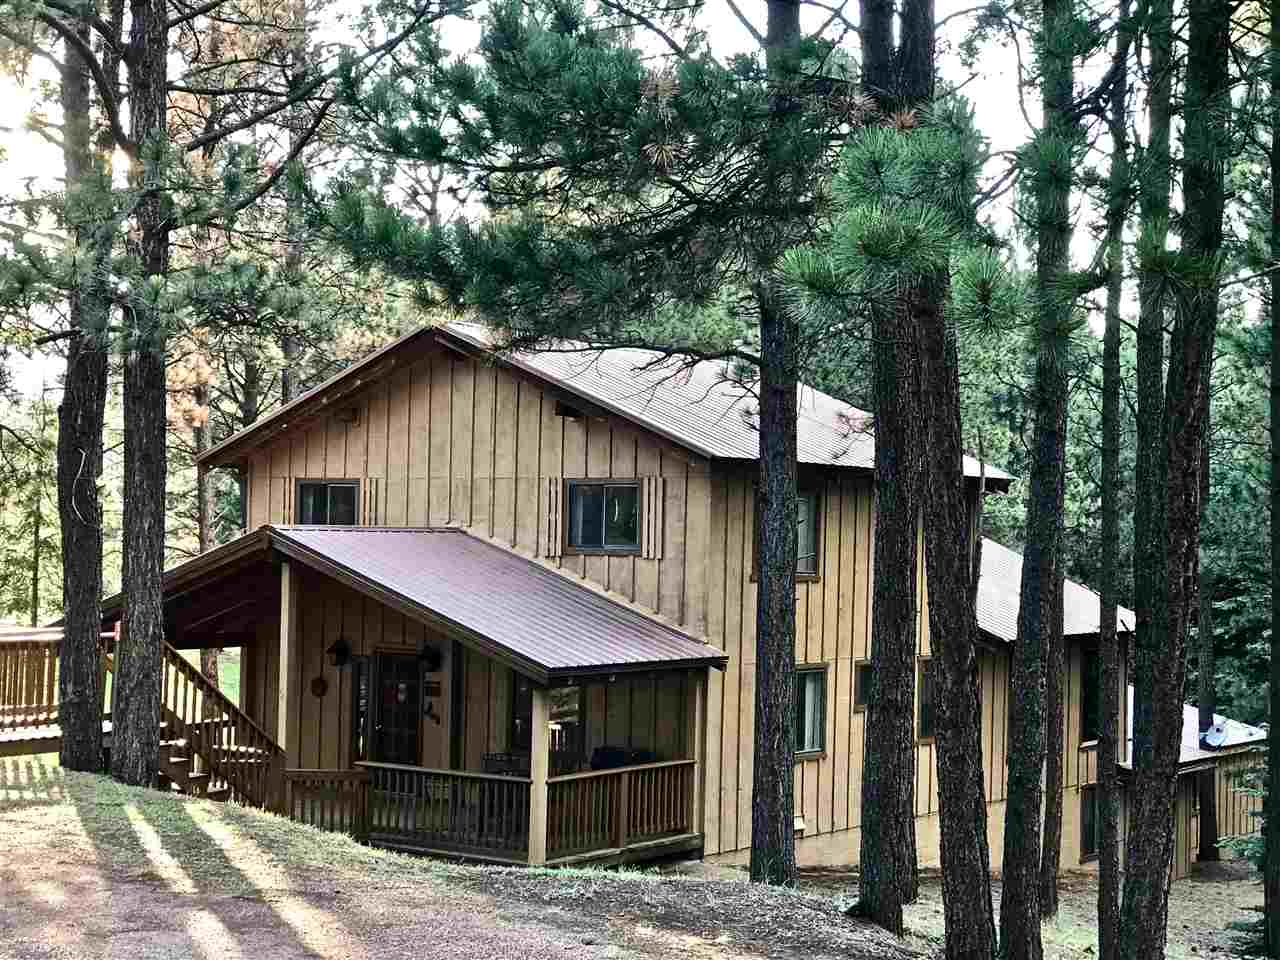 for fire circle cabins ranch z in rent angel united mexico states rooms new